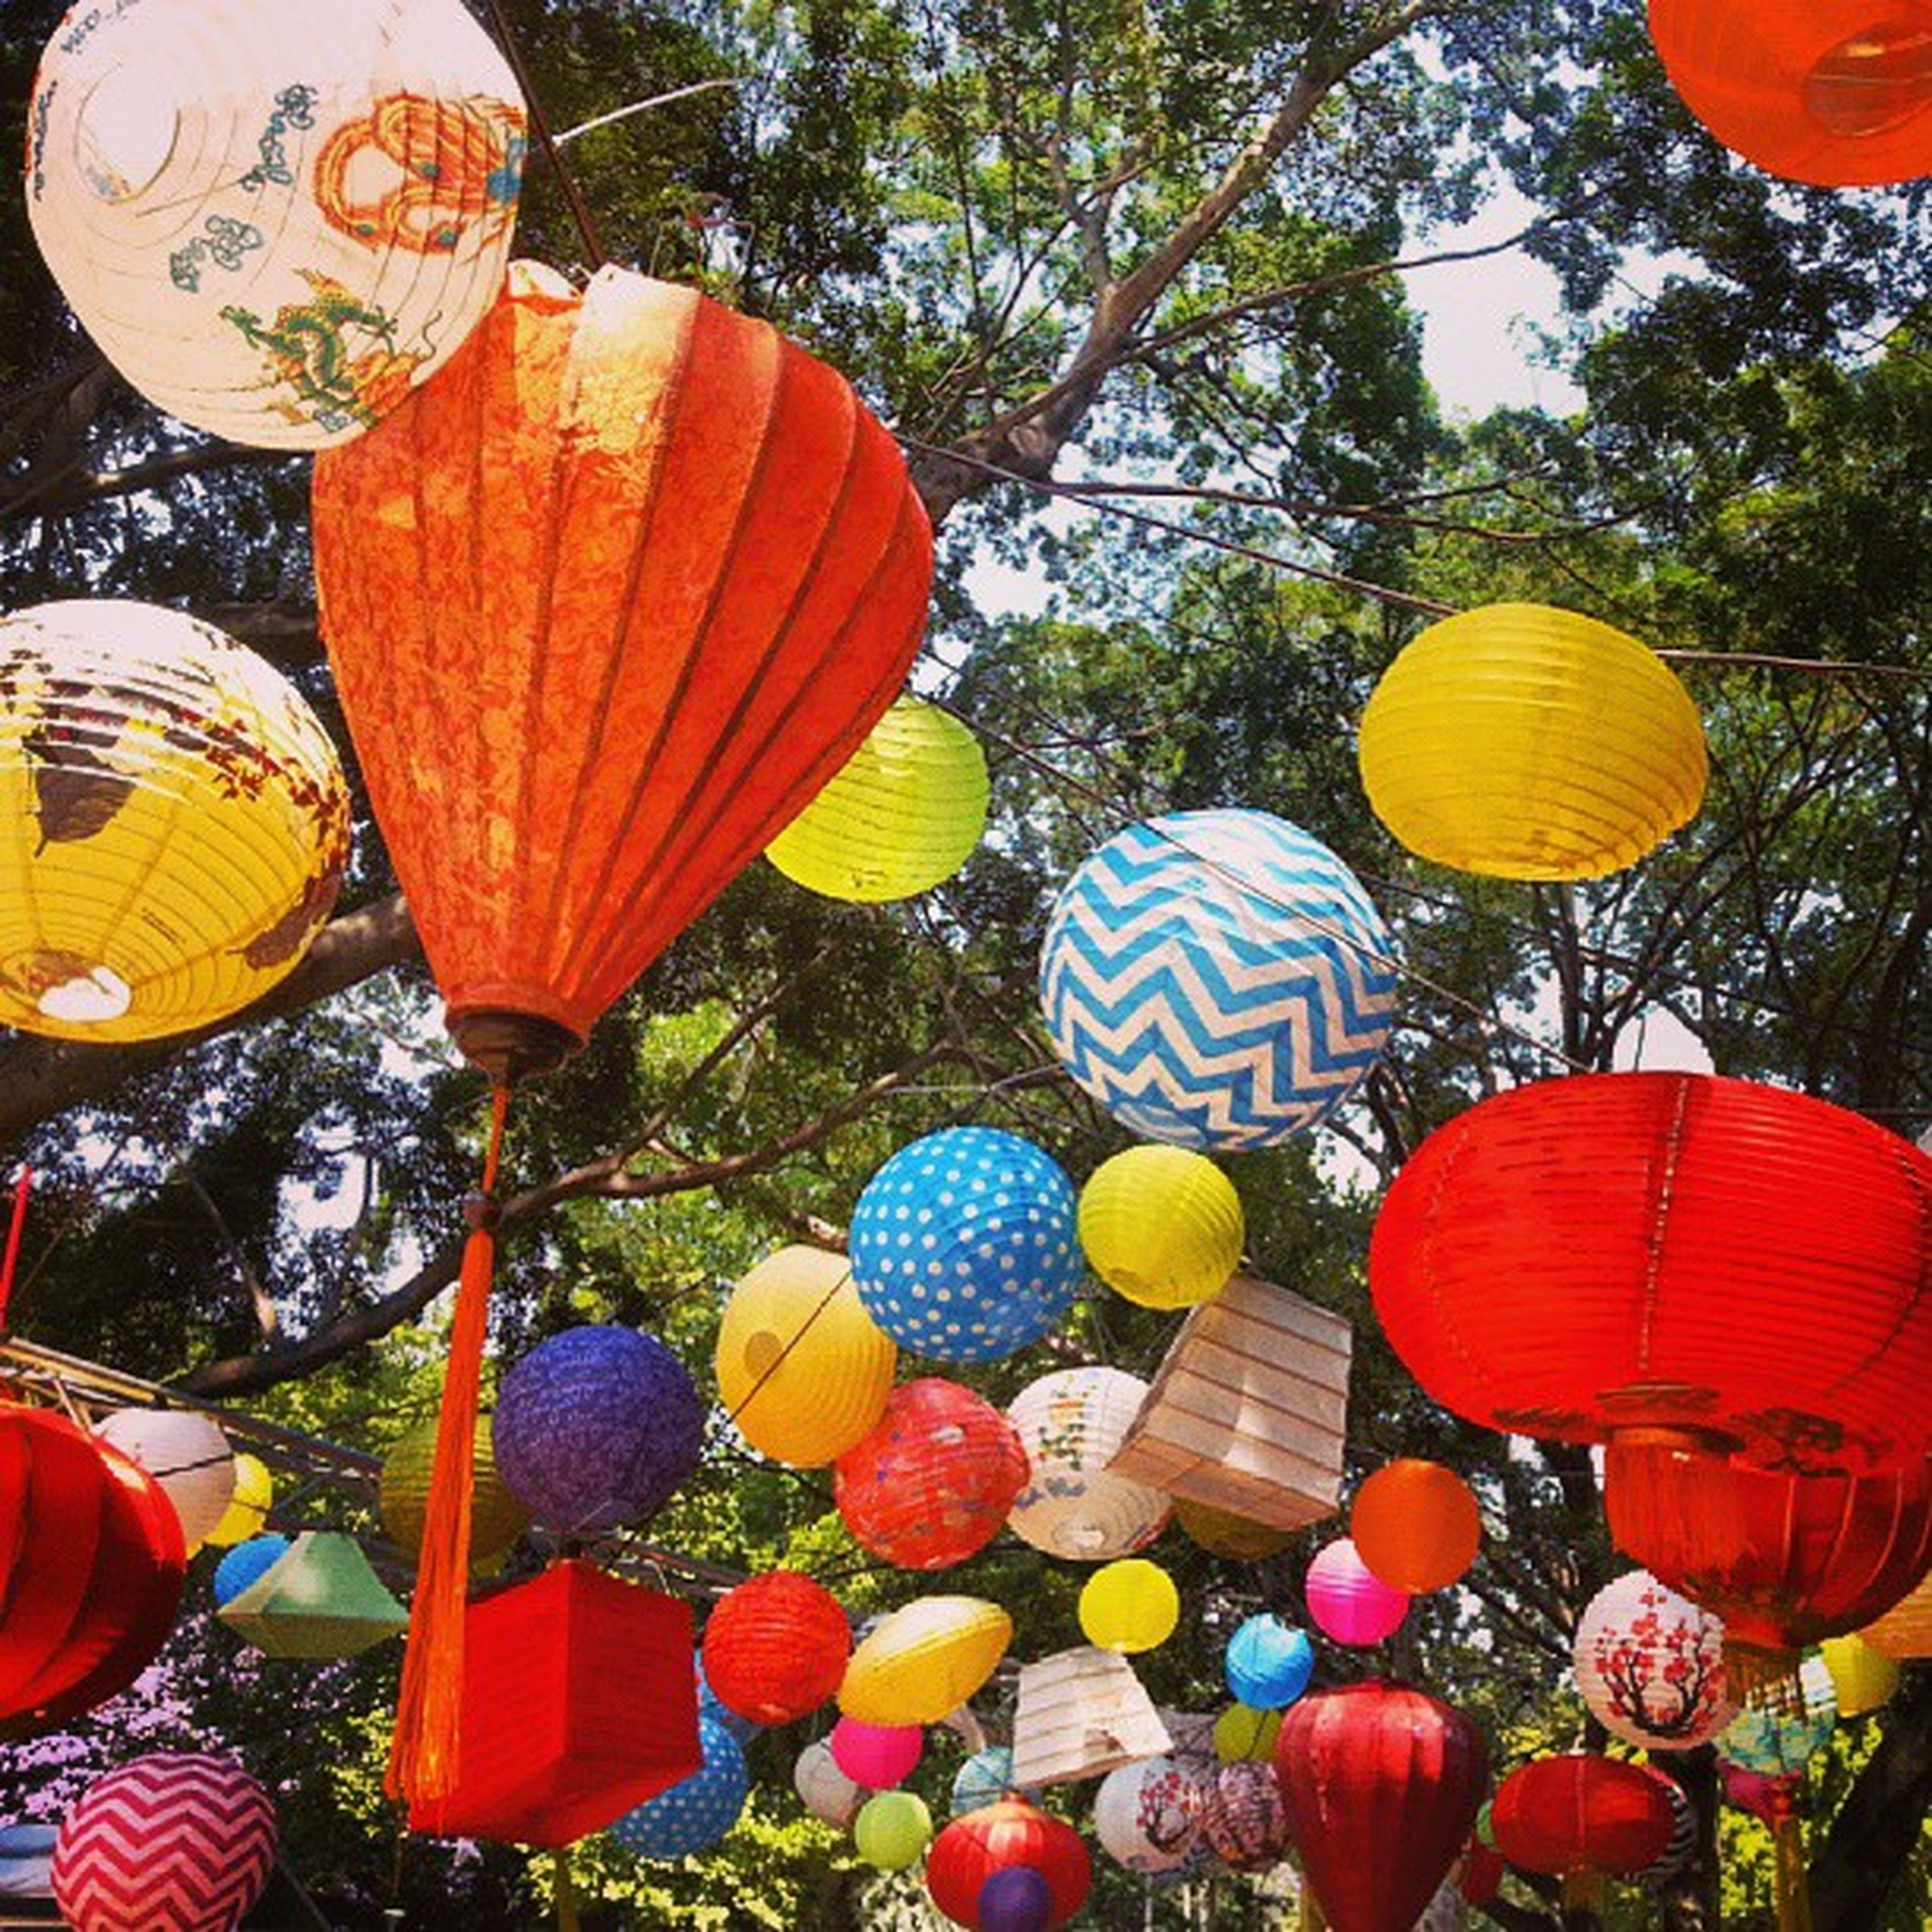 multi colored, tree, celebration, decoration, lantern, cultures, hanging, tradition, variation, balloon, abundance, traditional festival, outdoors, lighting equipment, day, large group of objects, low angle view, colorful, hot air balloon, nature